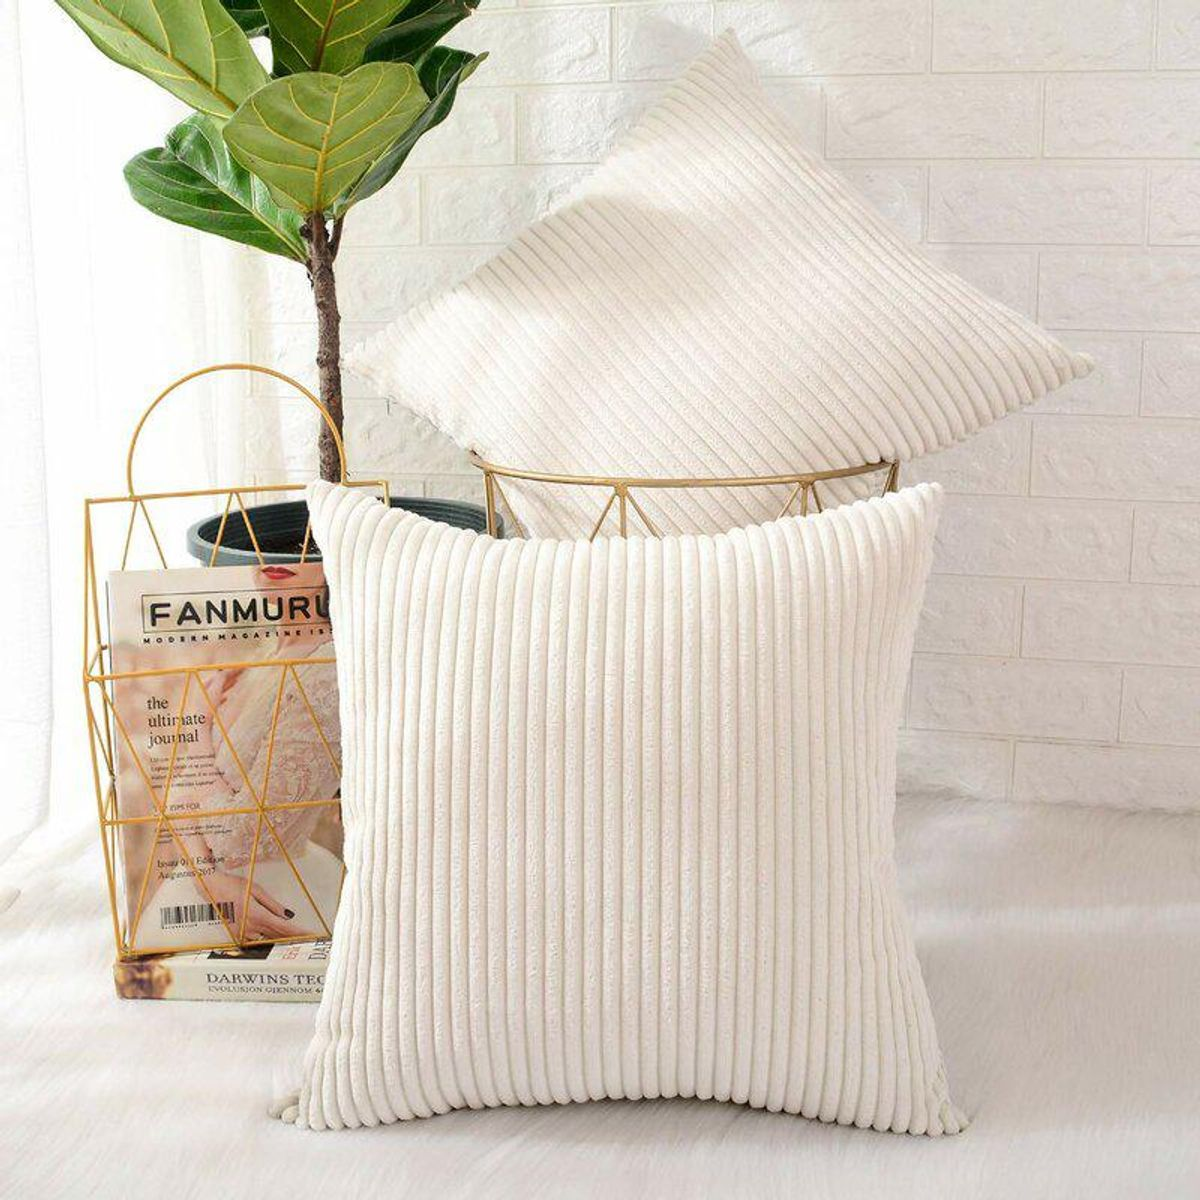 Ayedin Square Throw Pillow Cover (Set of 2)